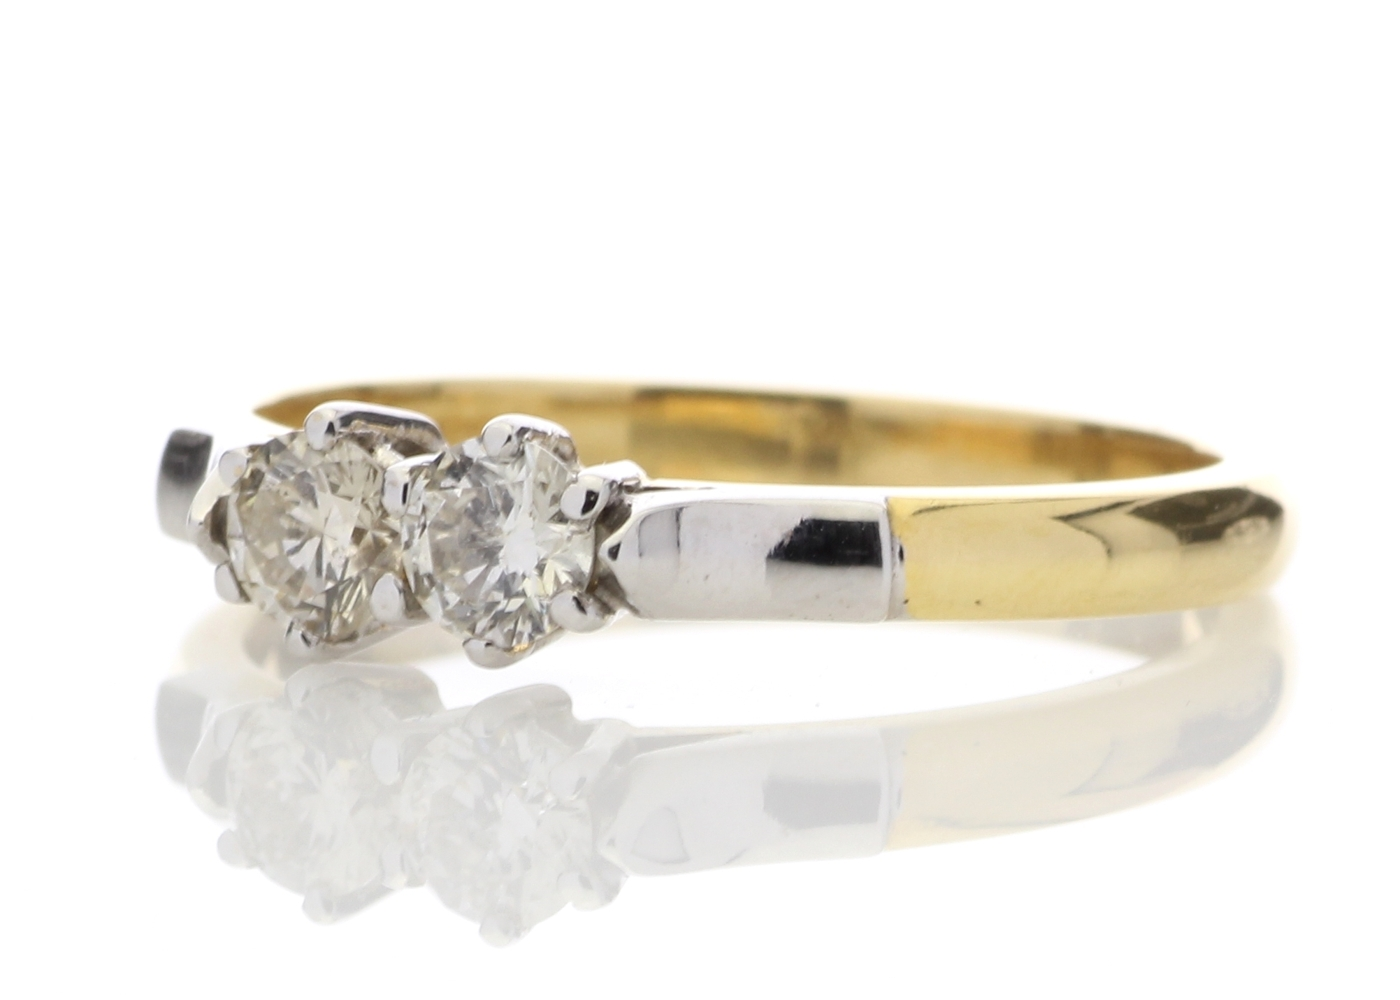 18k Two Stone Claw Set Diamond Ring 0.33 Carats - Image 2 of 5